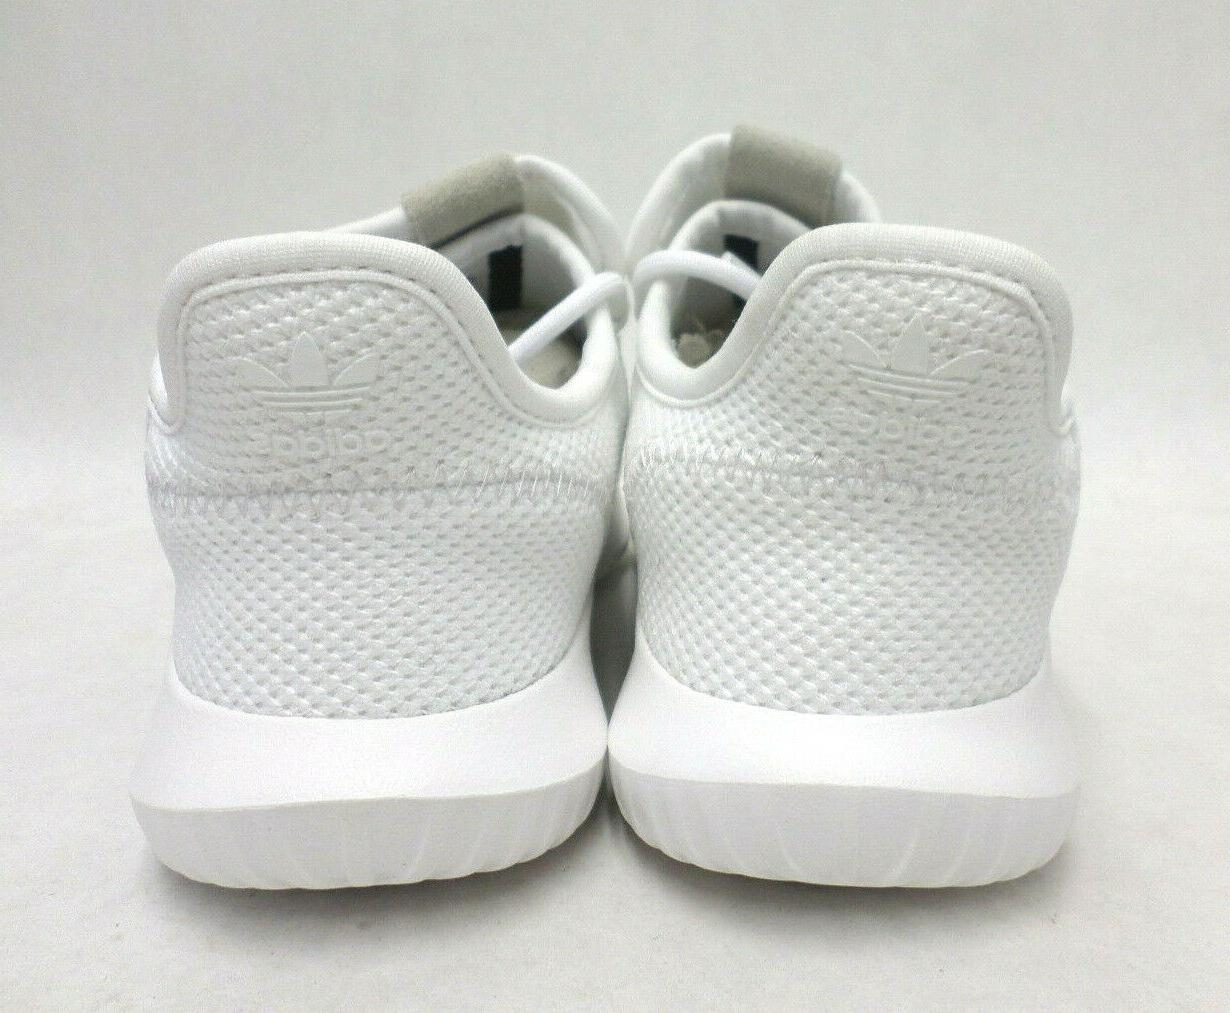 Adidas Kids Shadow Boys Sneakers Originals White Your Size